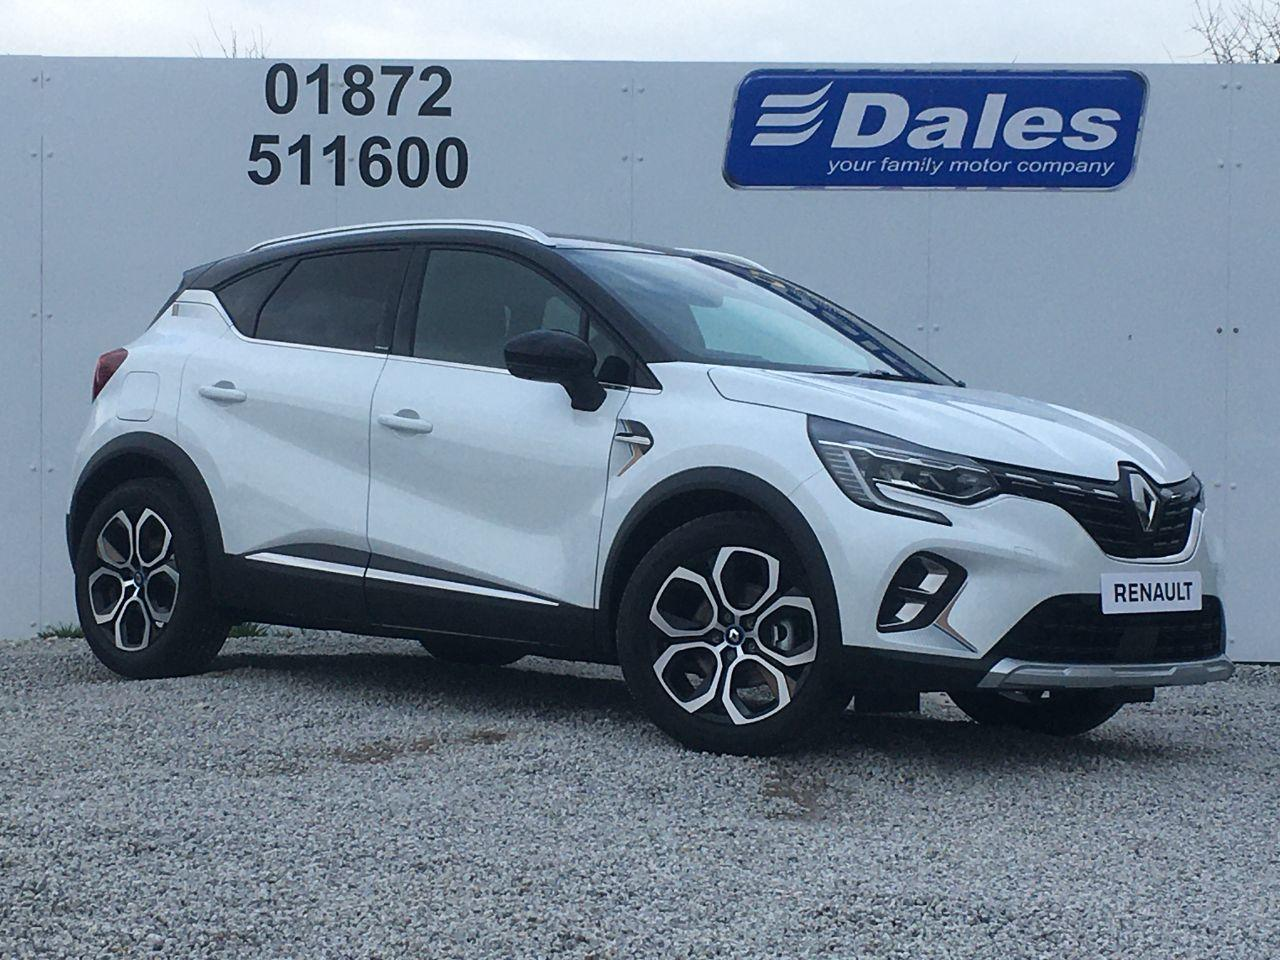 Renault Captur 1.3 E-TECH Launch Edition Plug-in Hybrid 160 Auto SUV Petrol / Electric Hybrid White/Black Roof